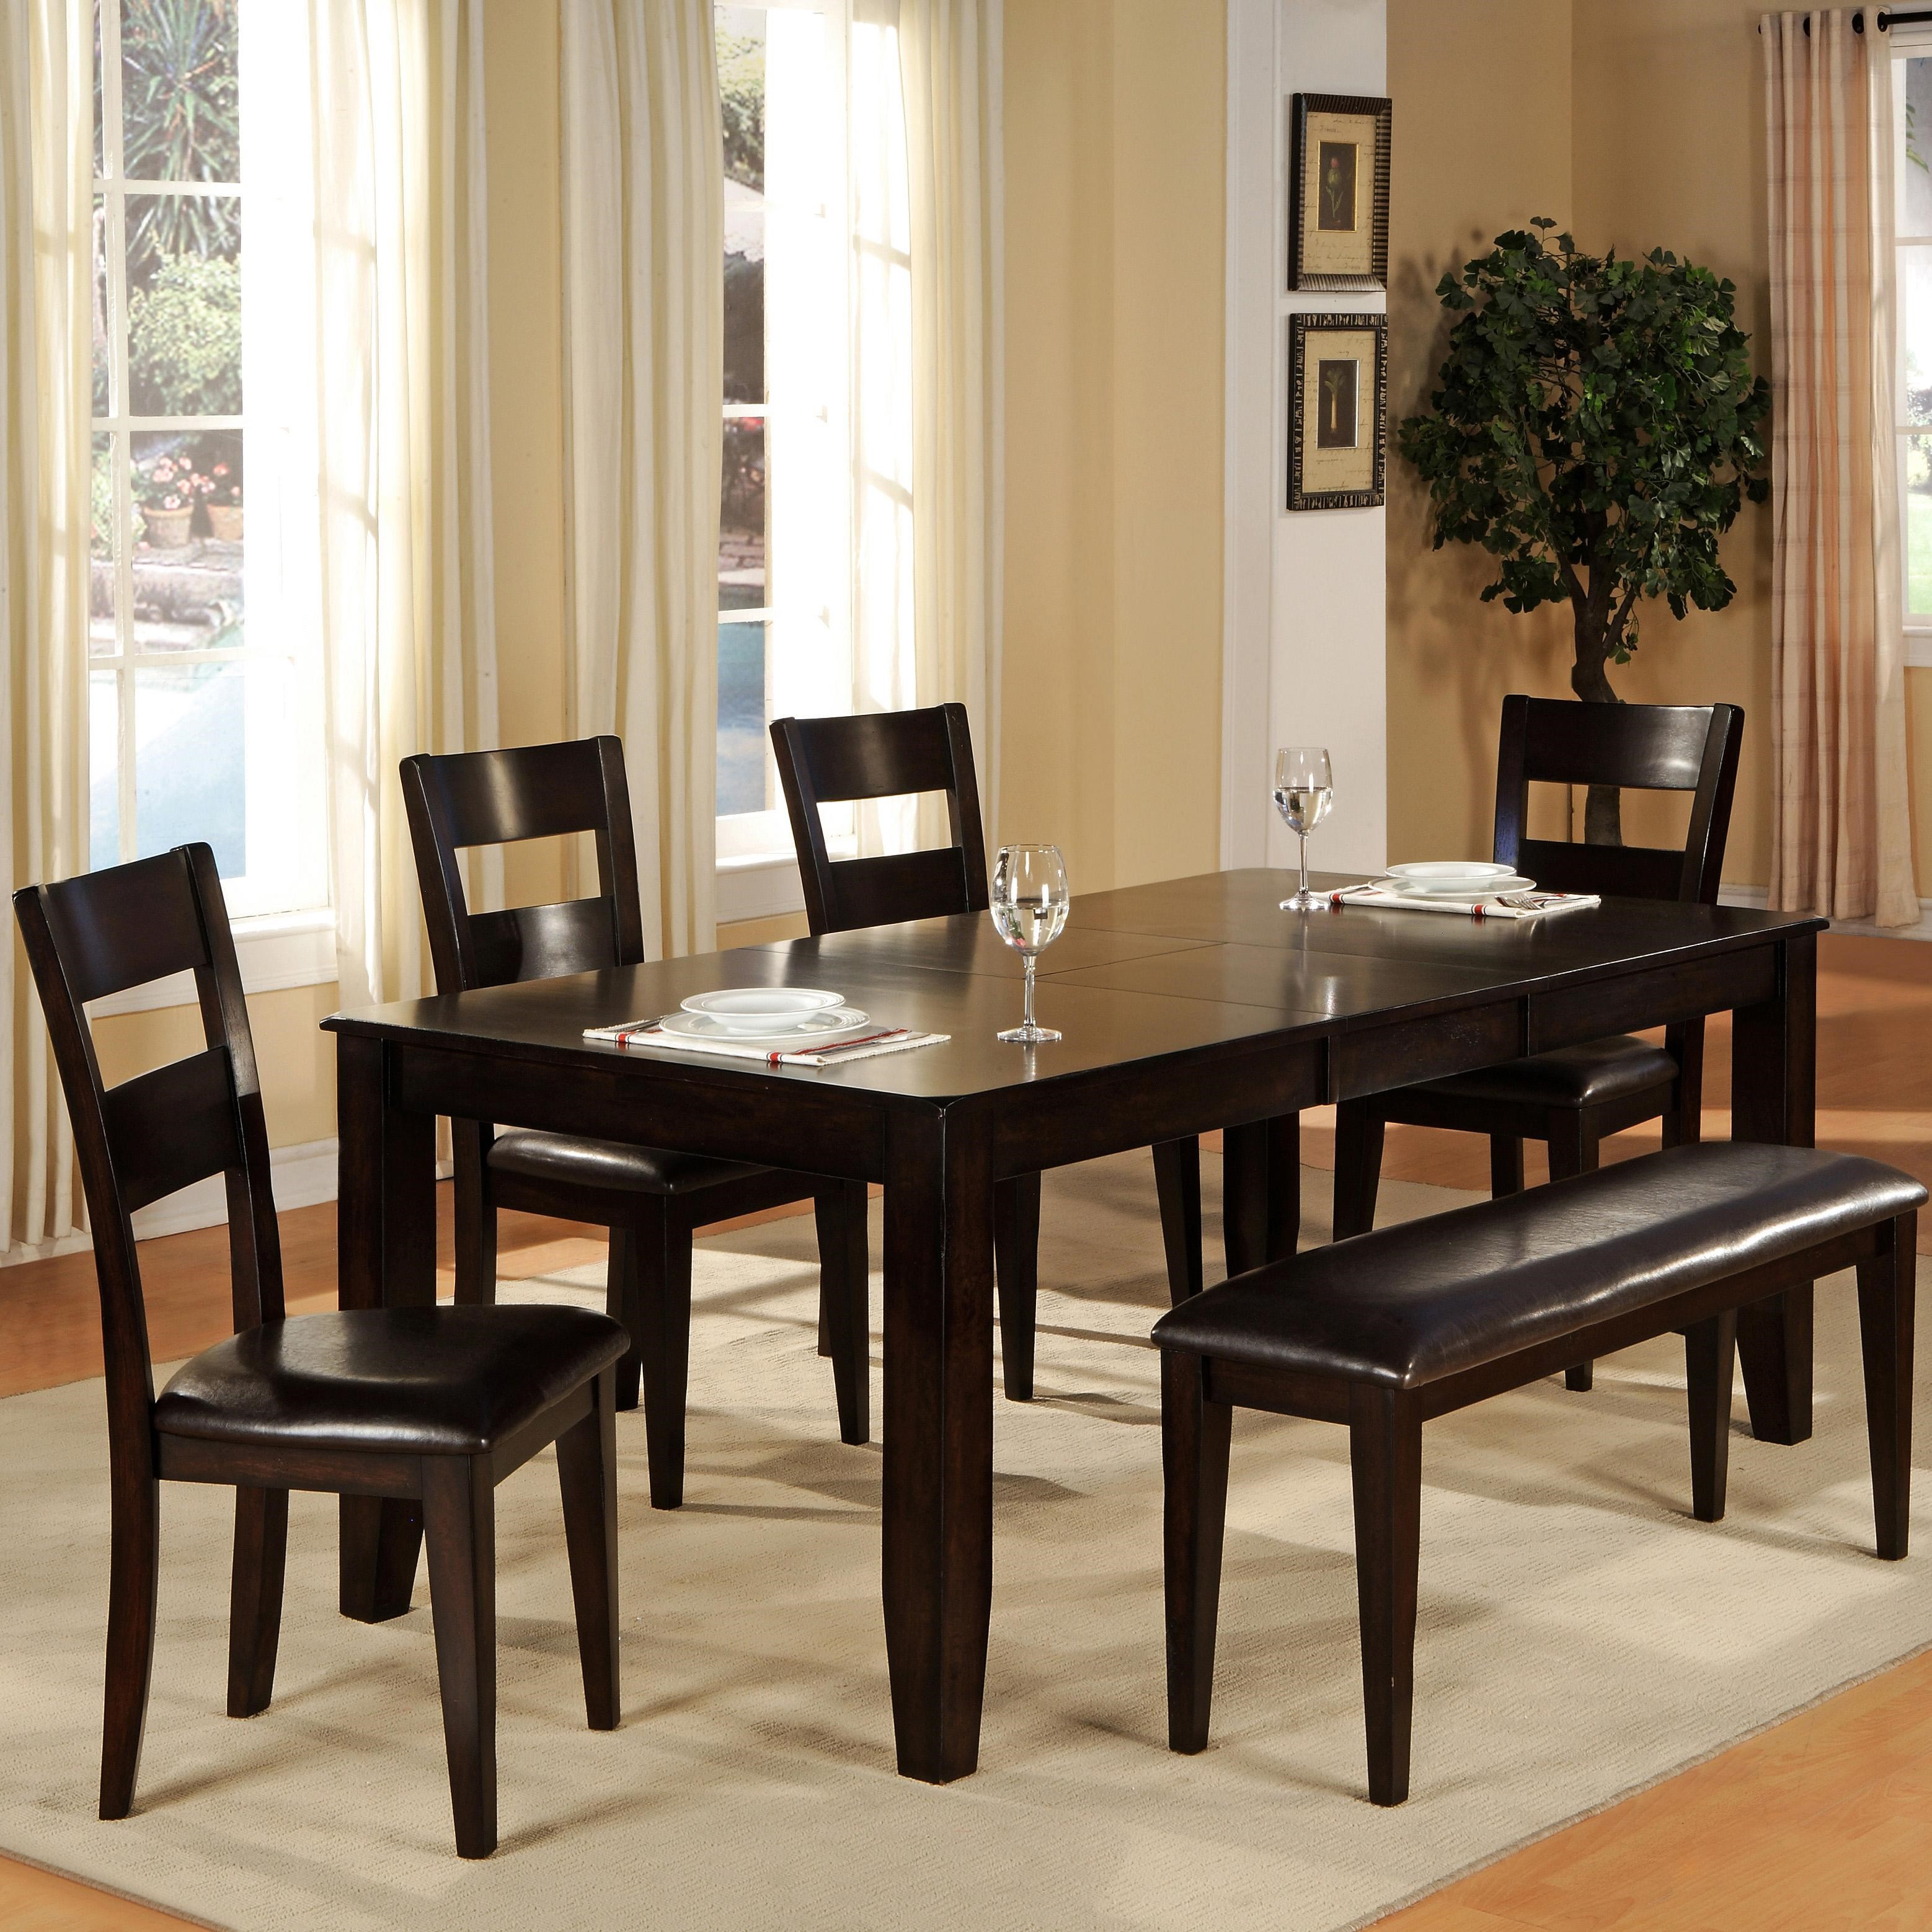 Signature Design By Ashley Larchmont Casual Dining Room  : products2Fhollandhouse2Fcolor2Fbend2012891289 4278l2B4x321 s2B322 ben bjpgscalebothampwidth500ampheight500ampfsharpen25ampdown from www.elivingroomfurniture.com size 500 x 500 jpeg 62kB